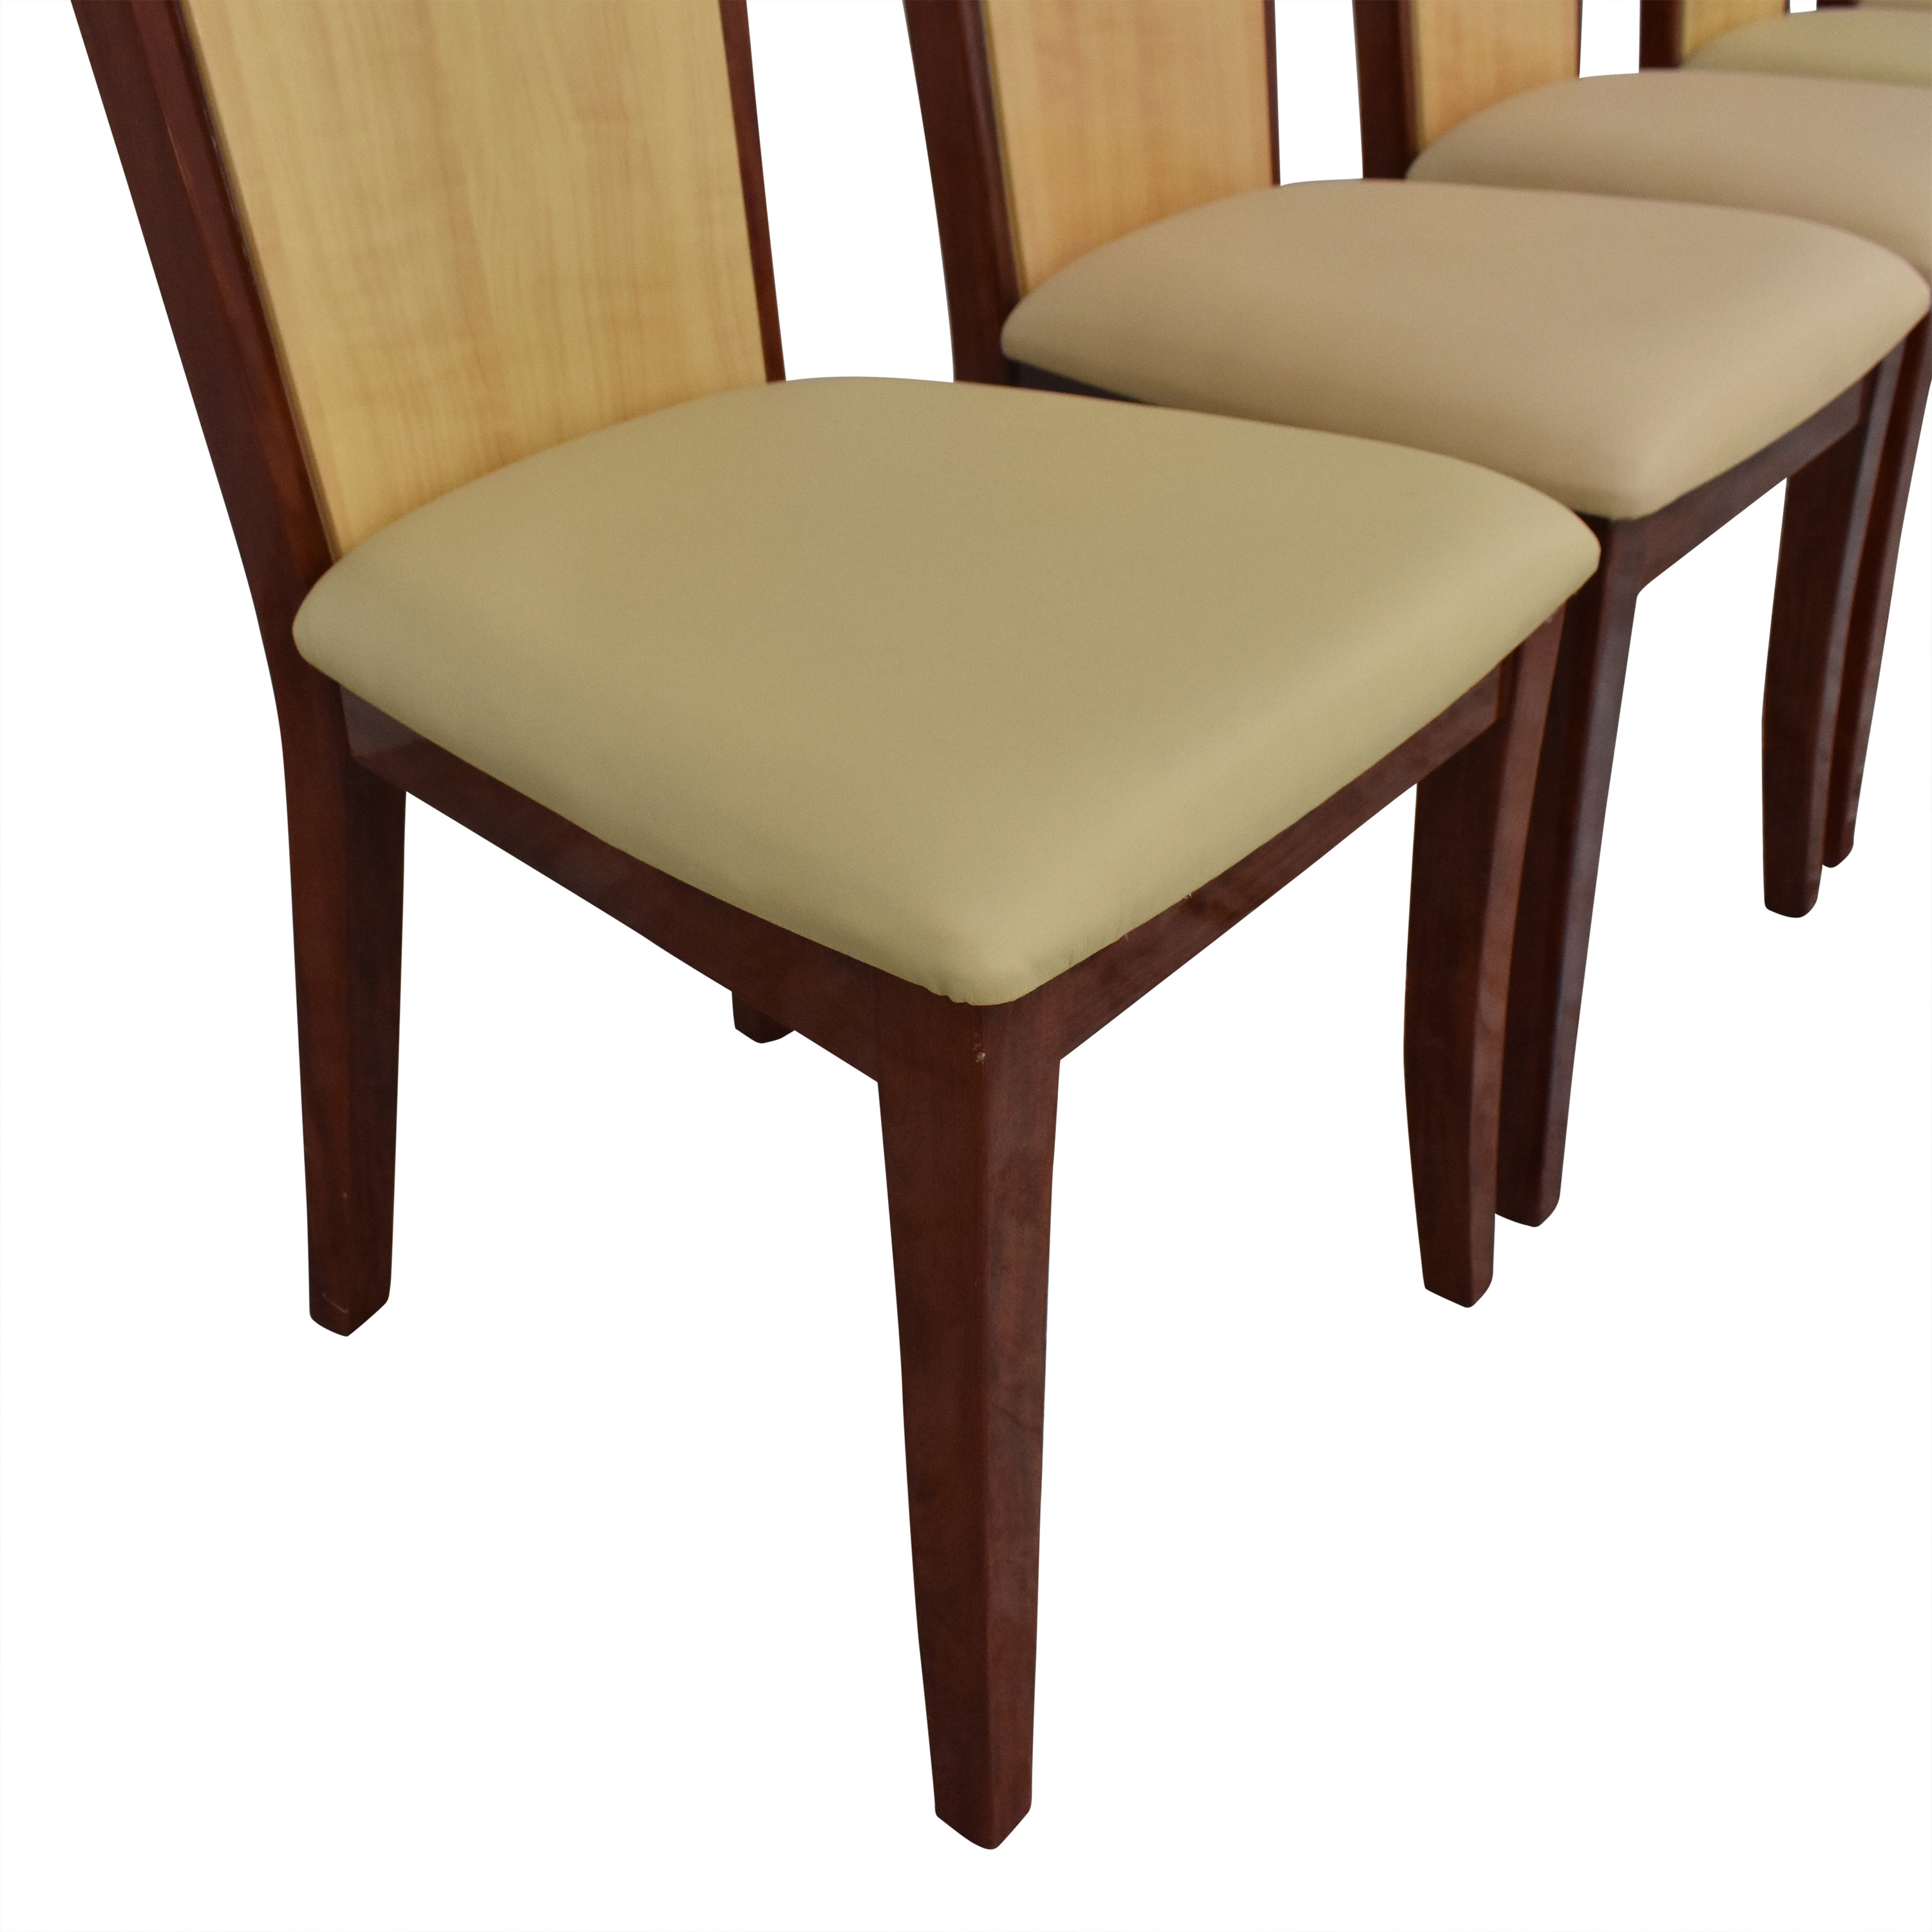 Global Italian Style High Back Dining Chairs pa